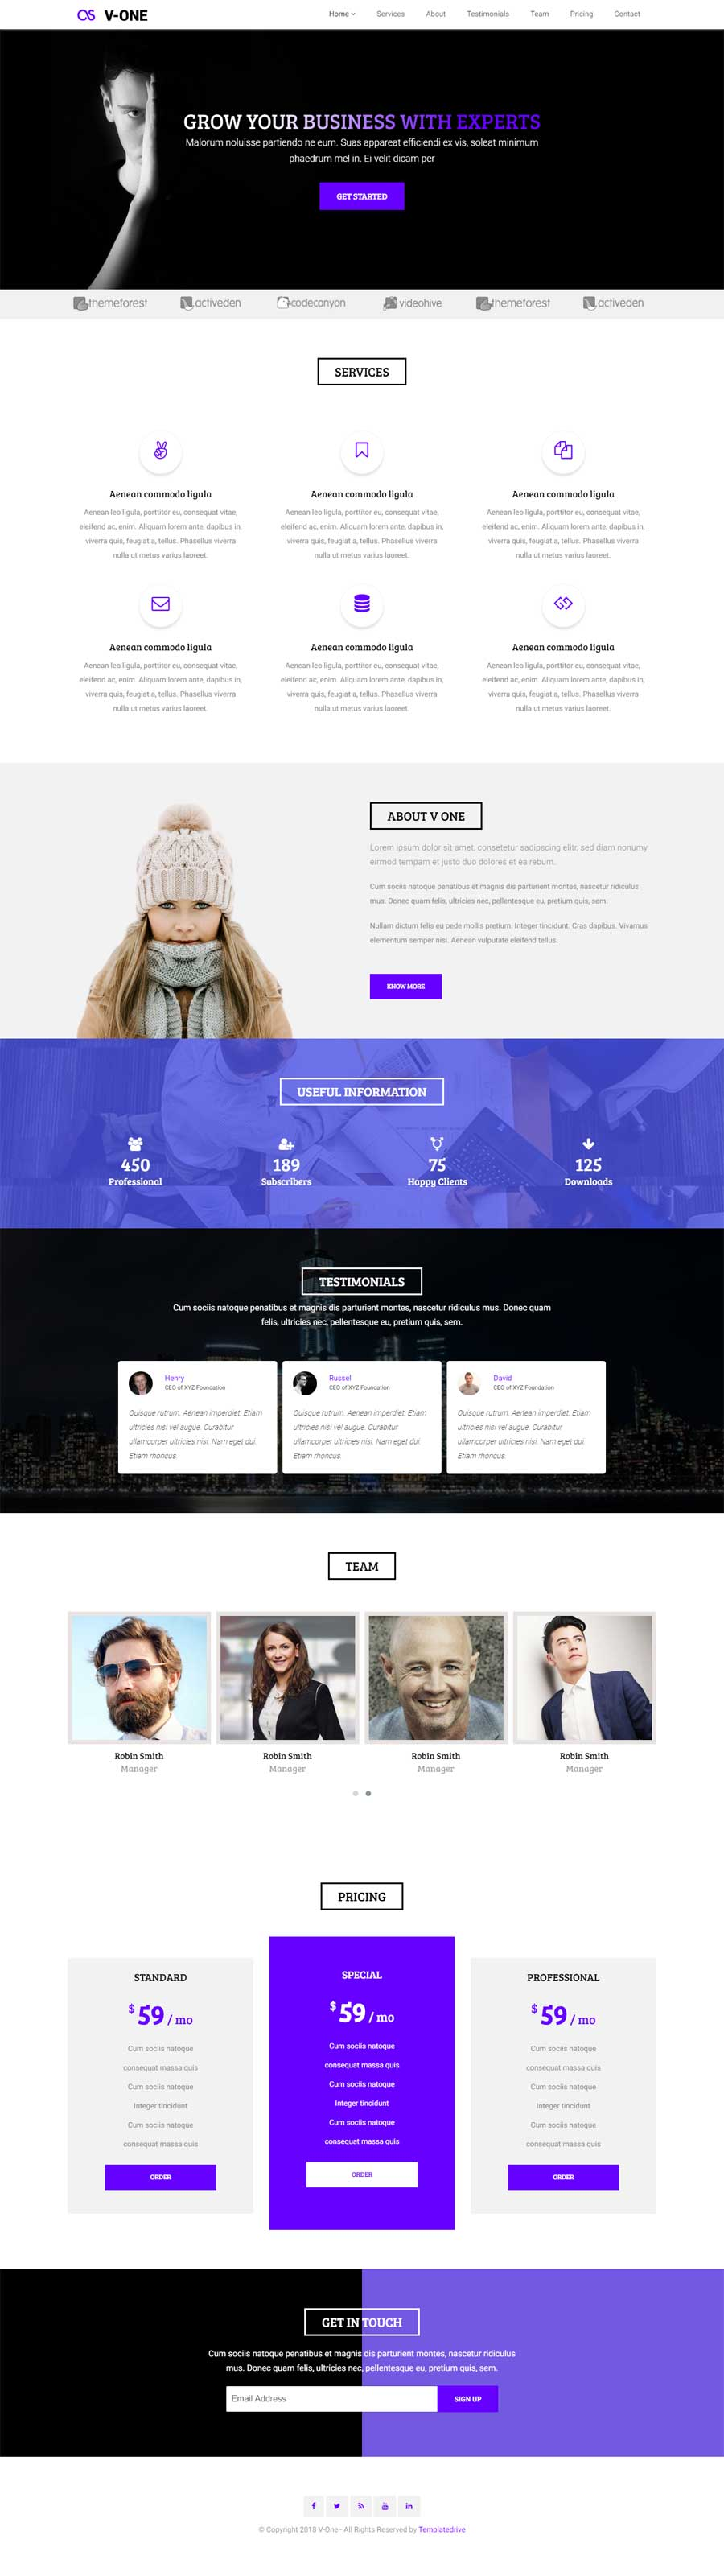 Vone Responsive Business Landing Page Template